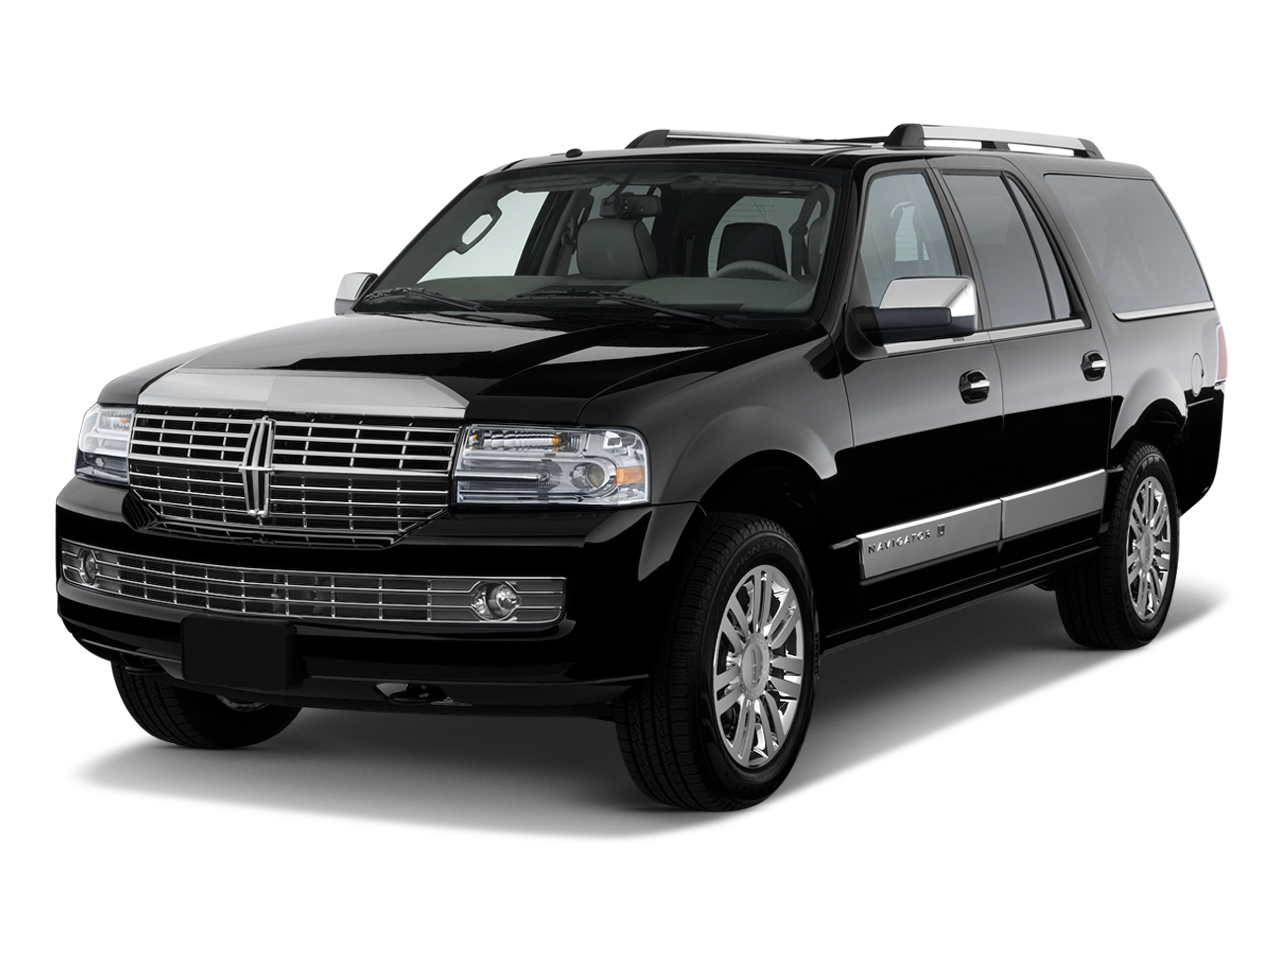 Nissan Fort Worth Used Cars 2011 Lincoln Navigator Gas Mileage - The Car Connection